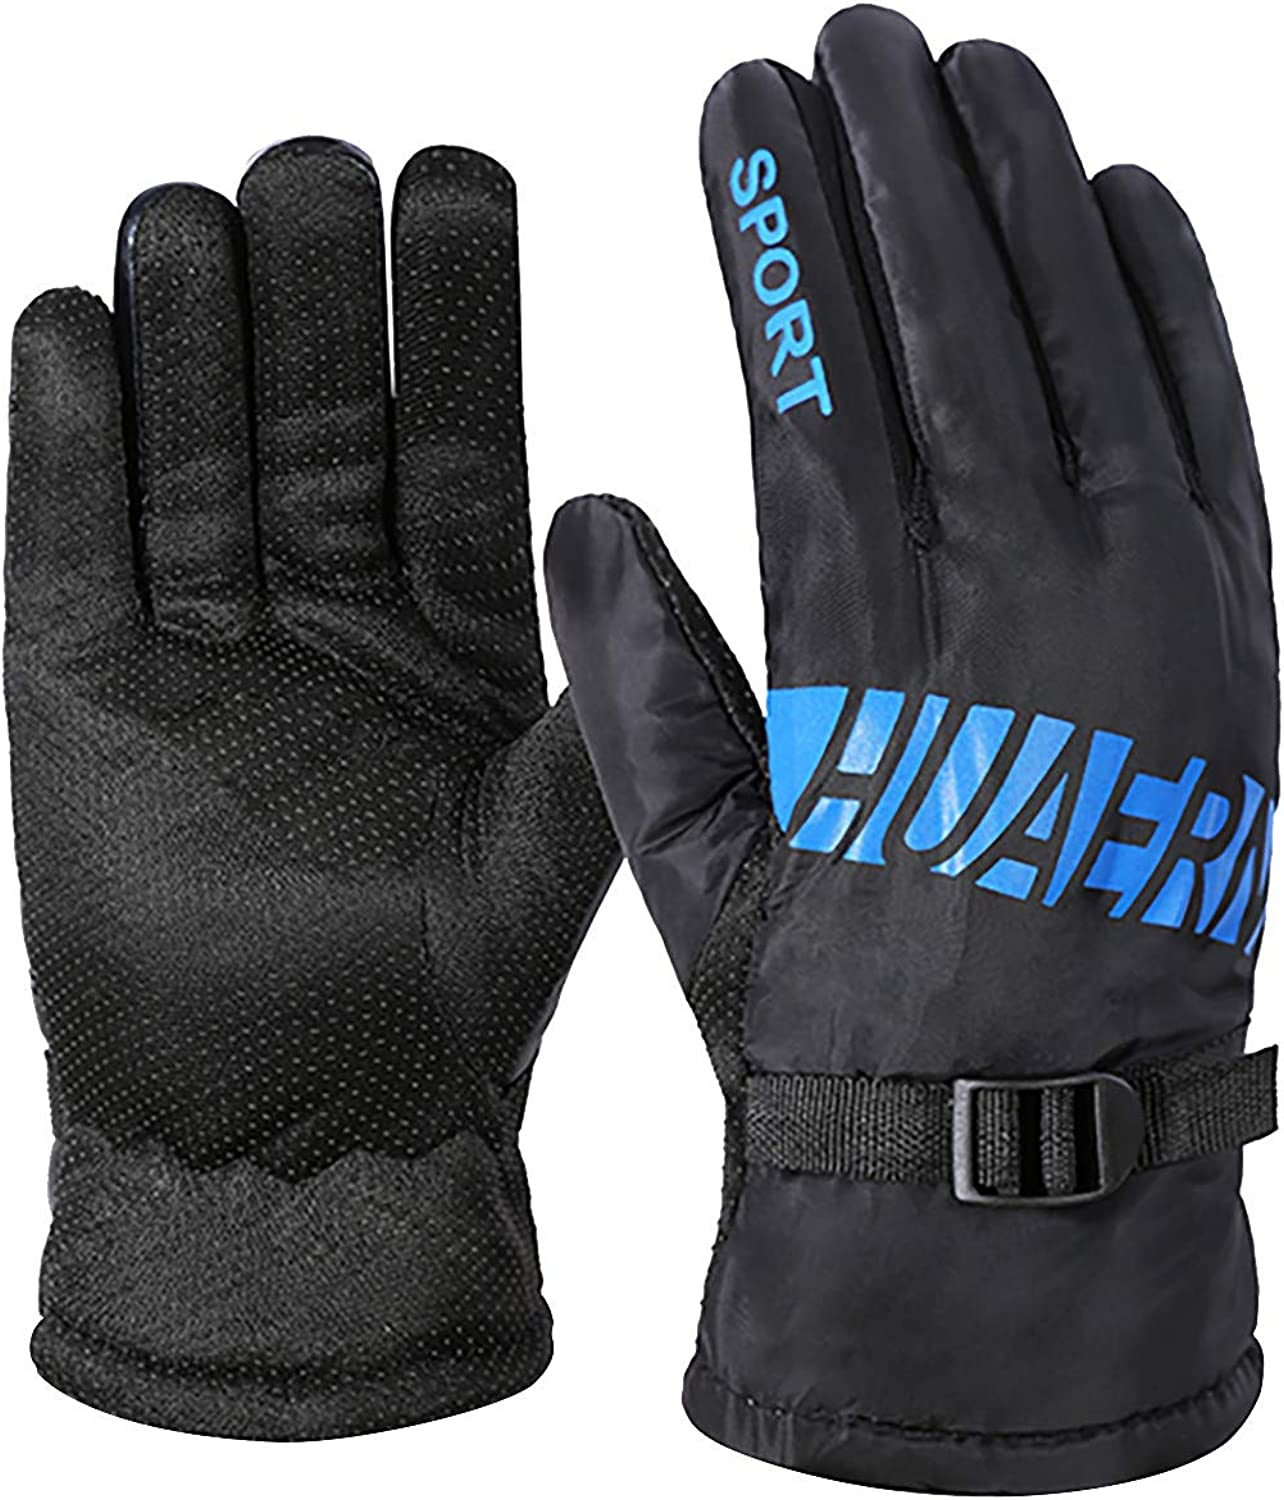 Winter Gloves for Men Women,Winter outdoor sports gloves windproof to-uch screen cycling mountaineering